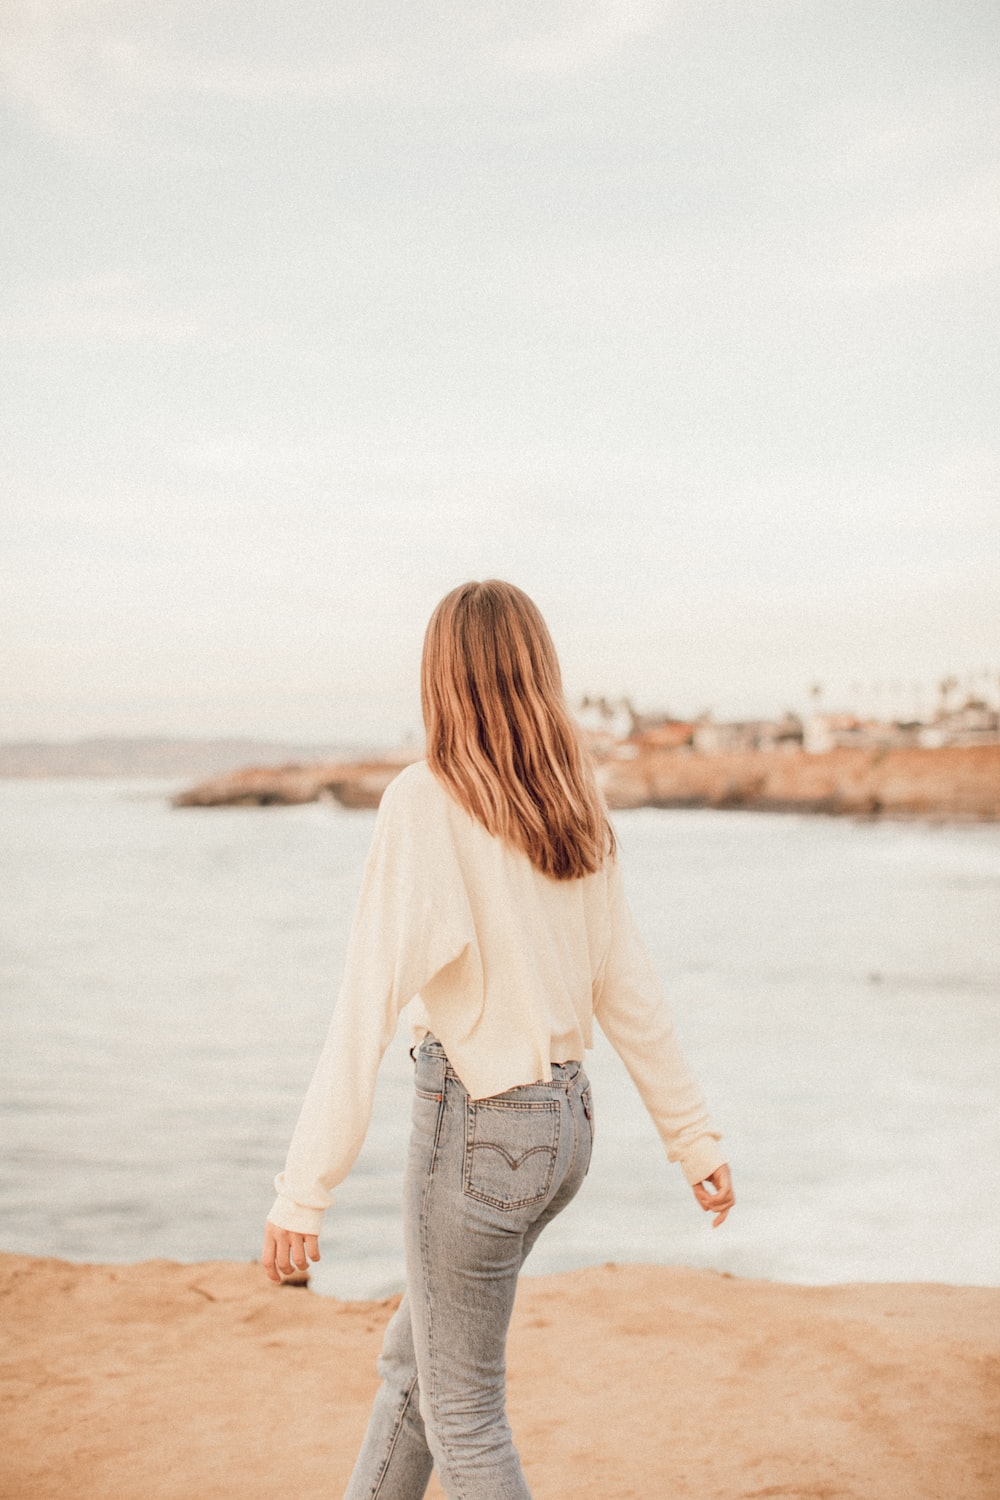 woman in white long sleeve shirt and blue denim jeans standing on seashore during daytime